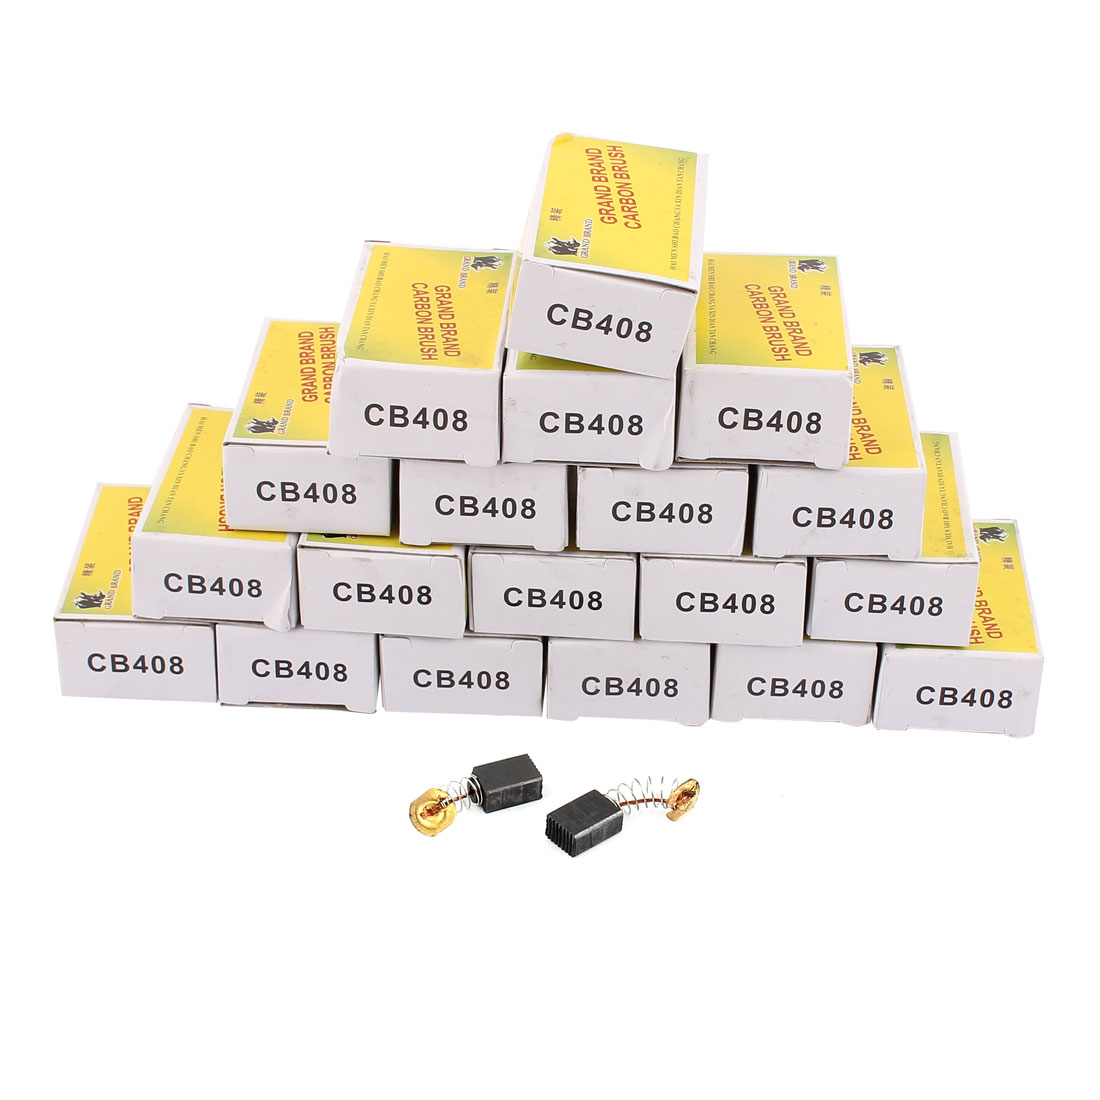 40 Pcs Replacement CB408 Carbon Brushes 12 x 8 x 5mm for Electric Motors